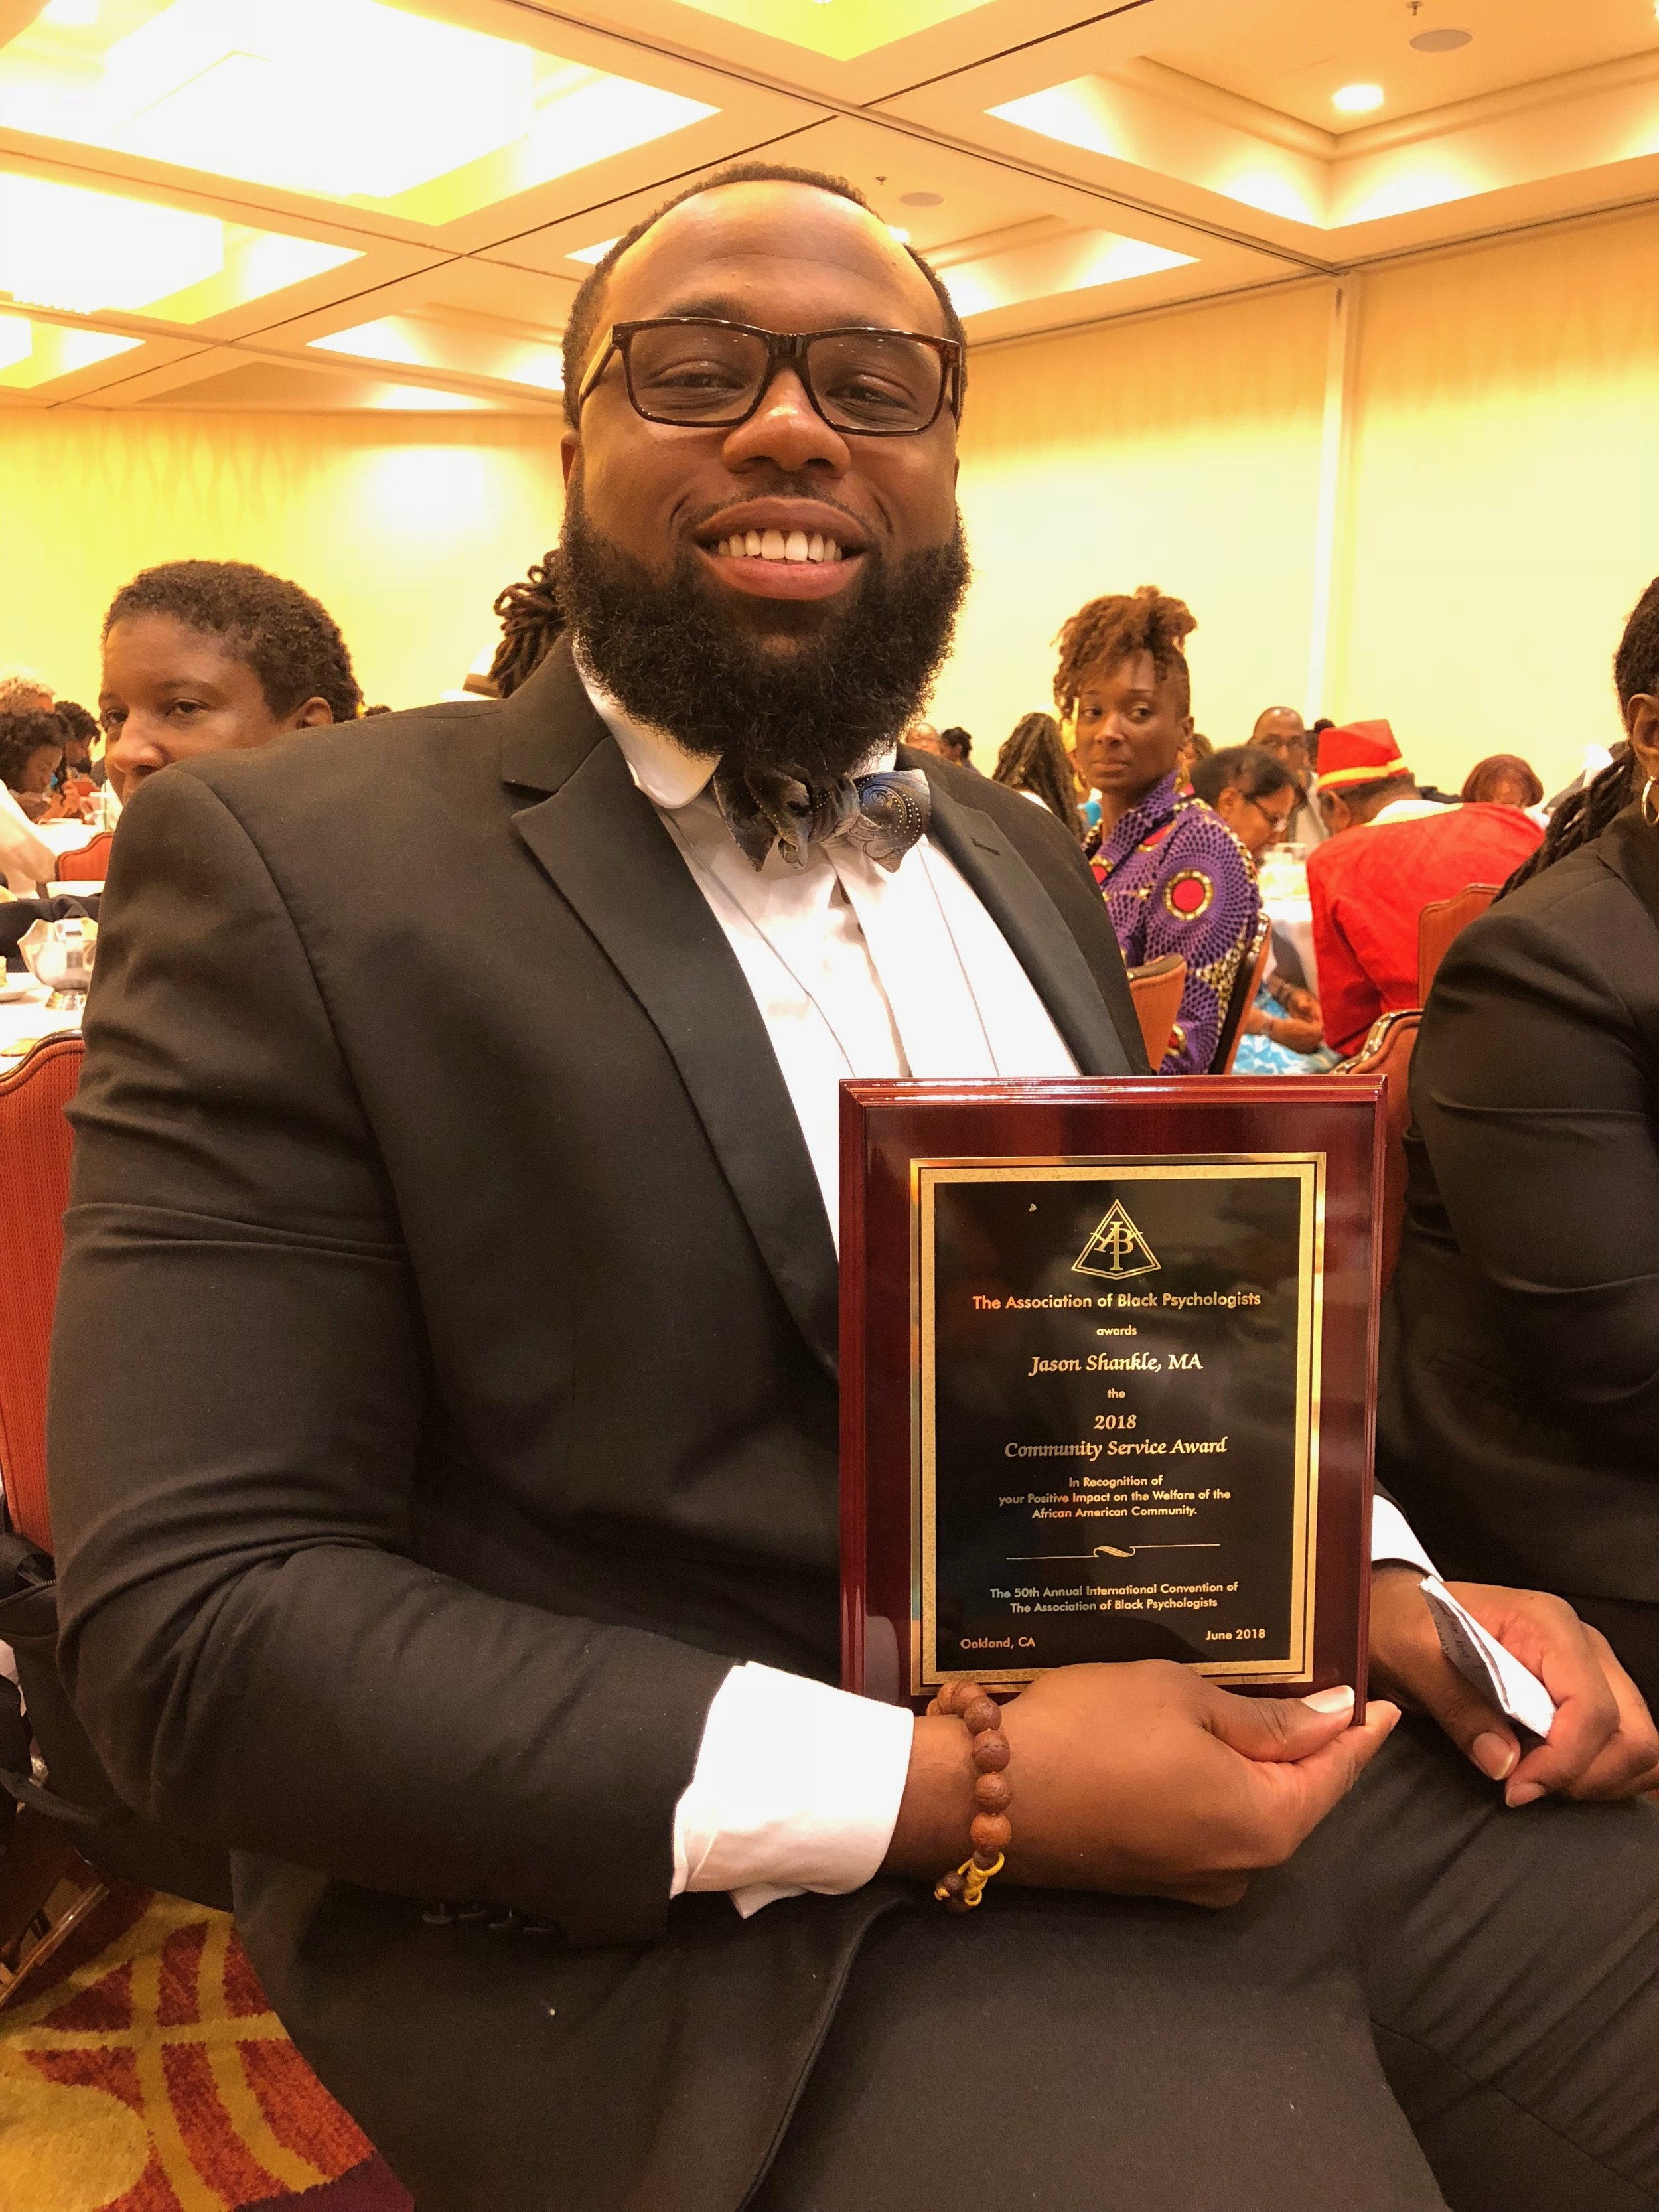 2018 Community Service Award - In recognition of your Positive Impact  on the Welfare of the African American Community. The 50th Annual International Convention of The Association of Black Psychologists